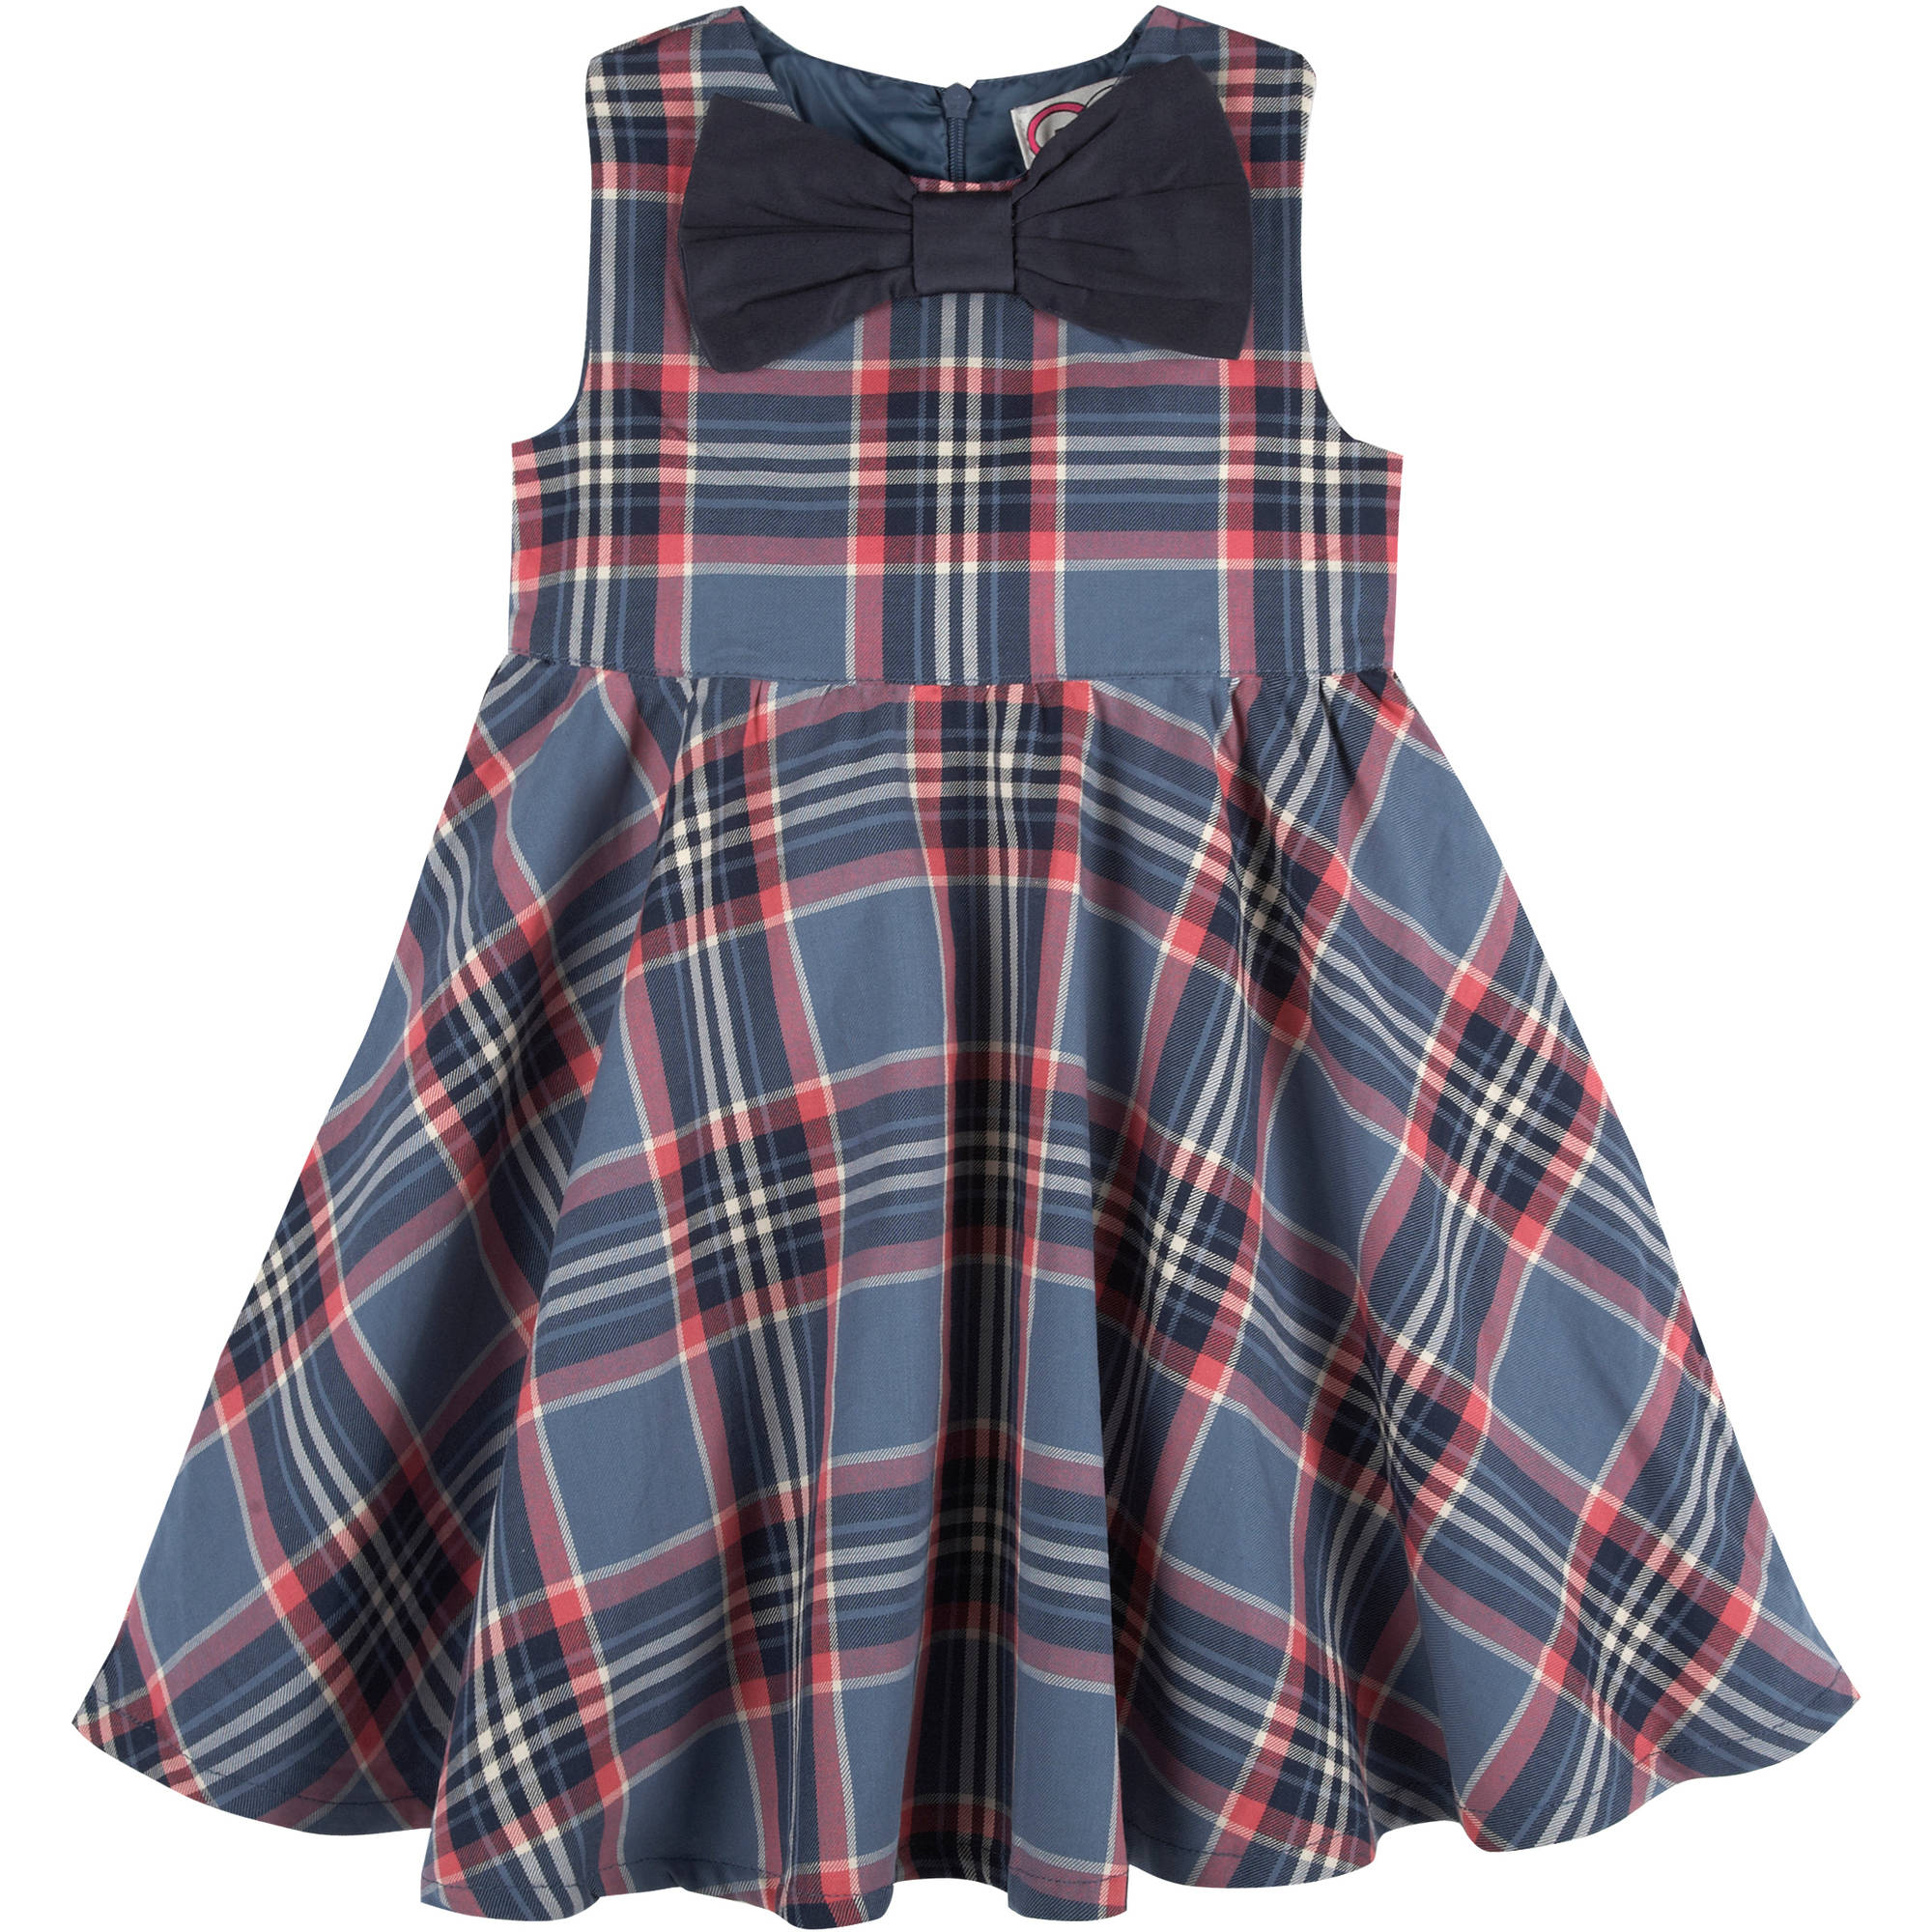 G-Cutee Baby Toddler Girl Blue & Pink Plaid Dress w/ Bow